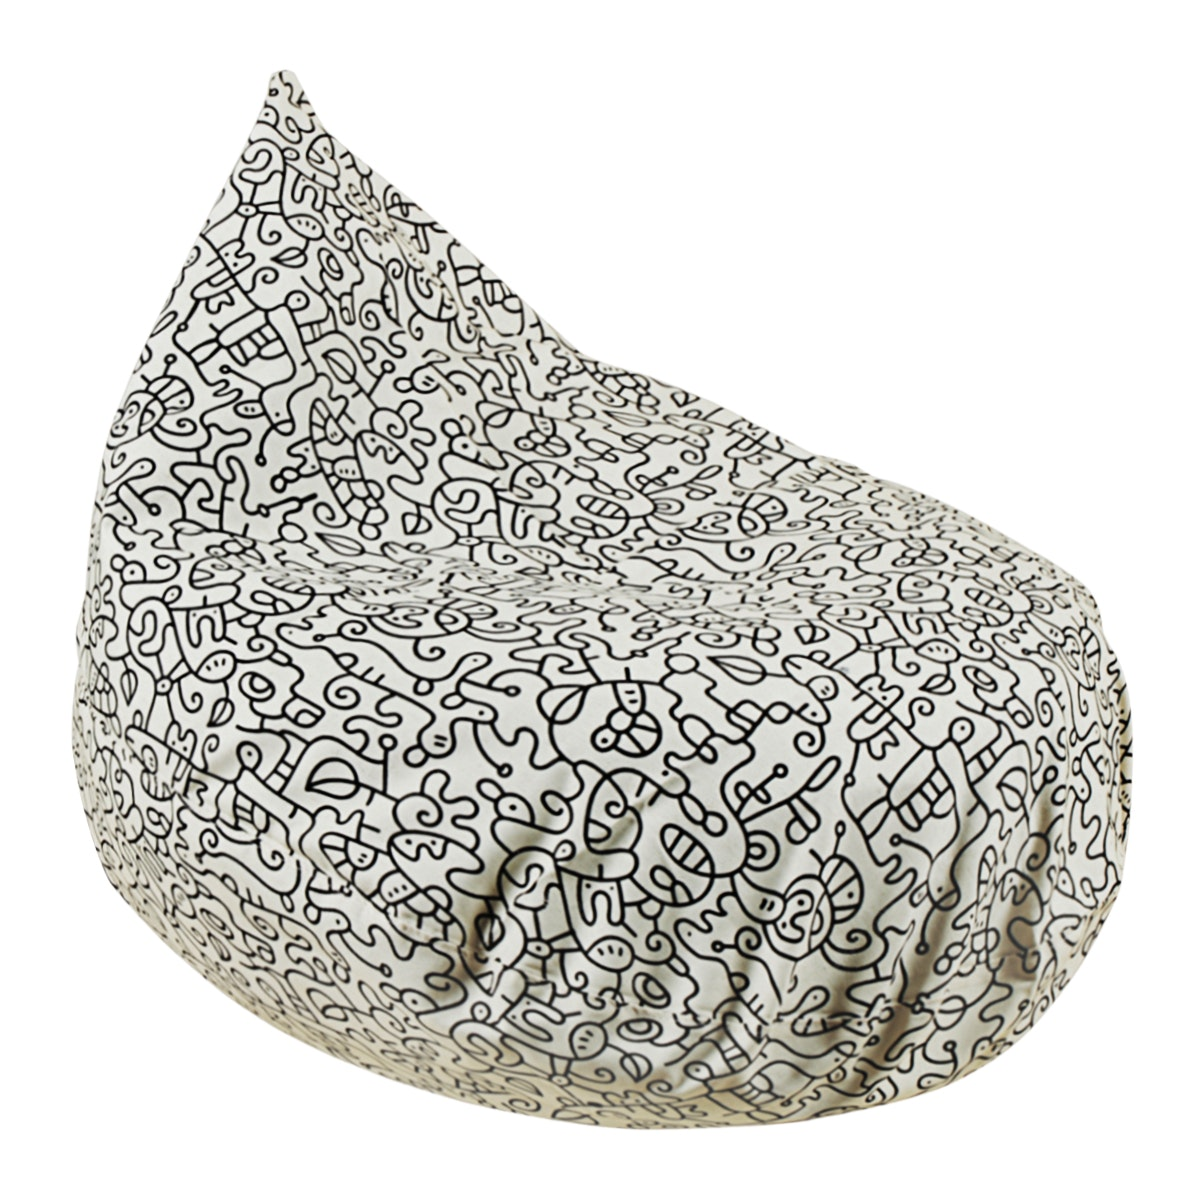 Beam and Co Teardrop Beanbag Kimi